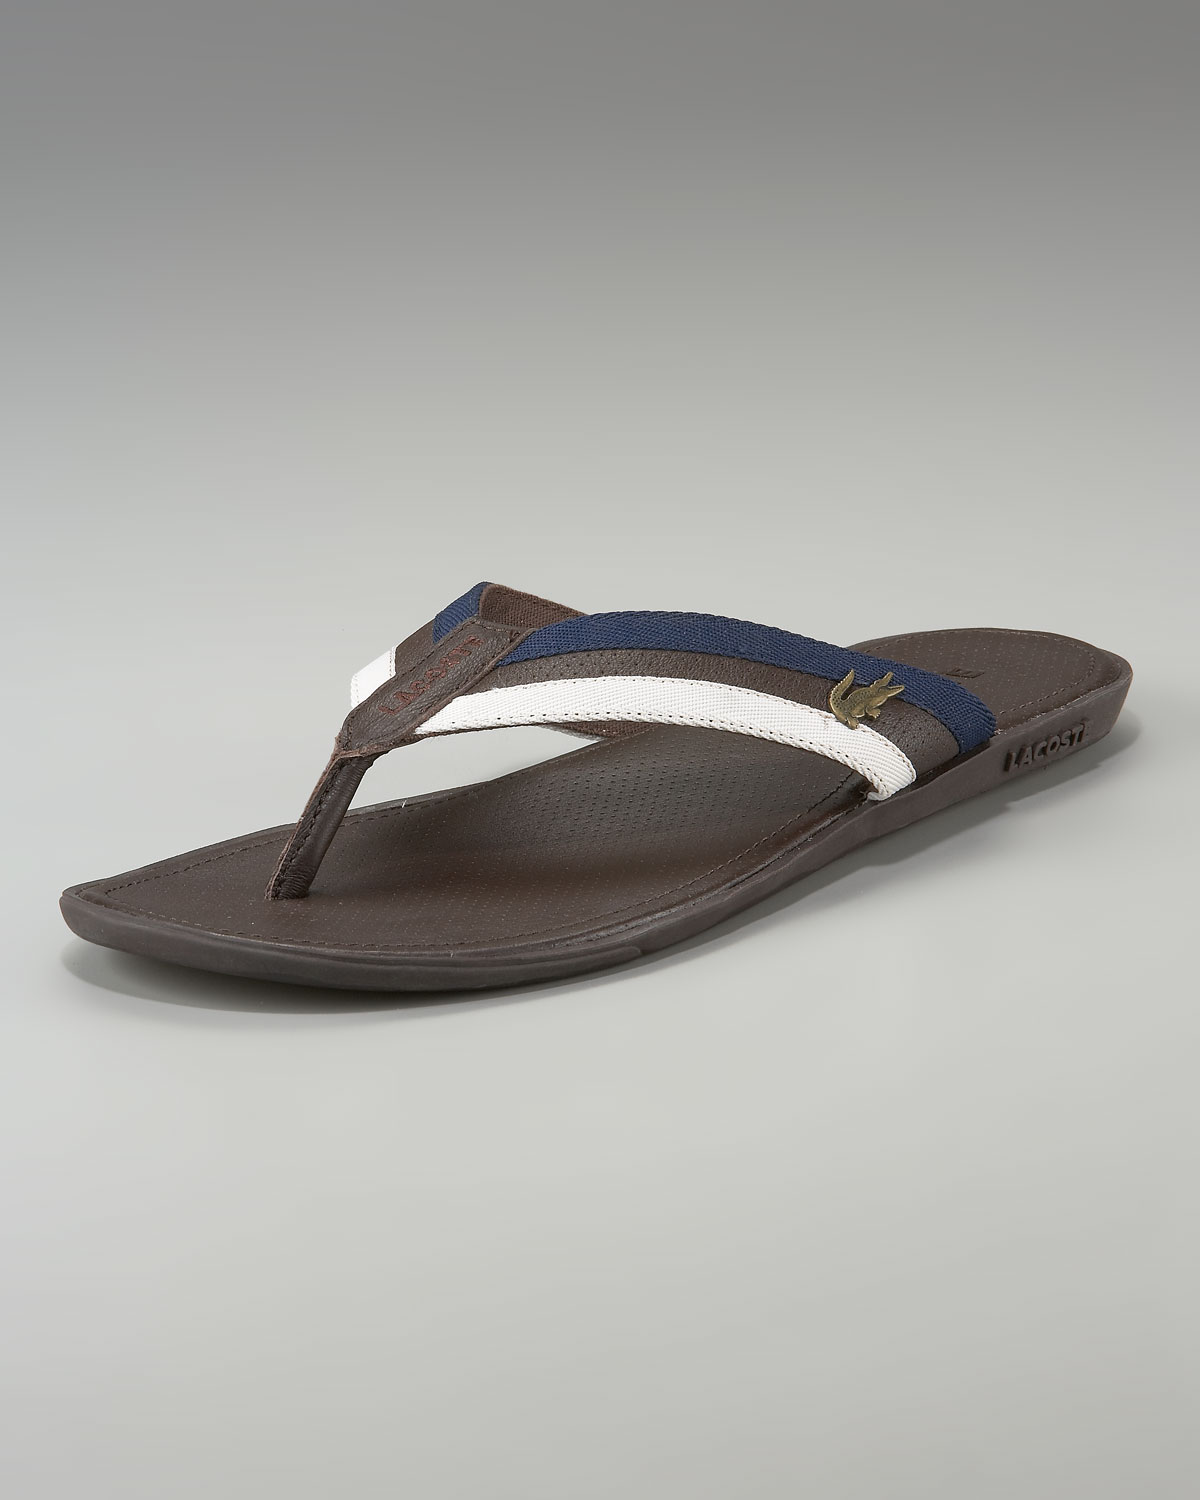 61c639a2e Lyst - Lacoste Carros Striped Flip-flop in Brown for Men